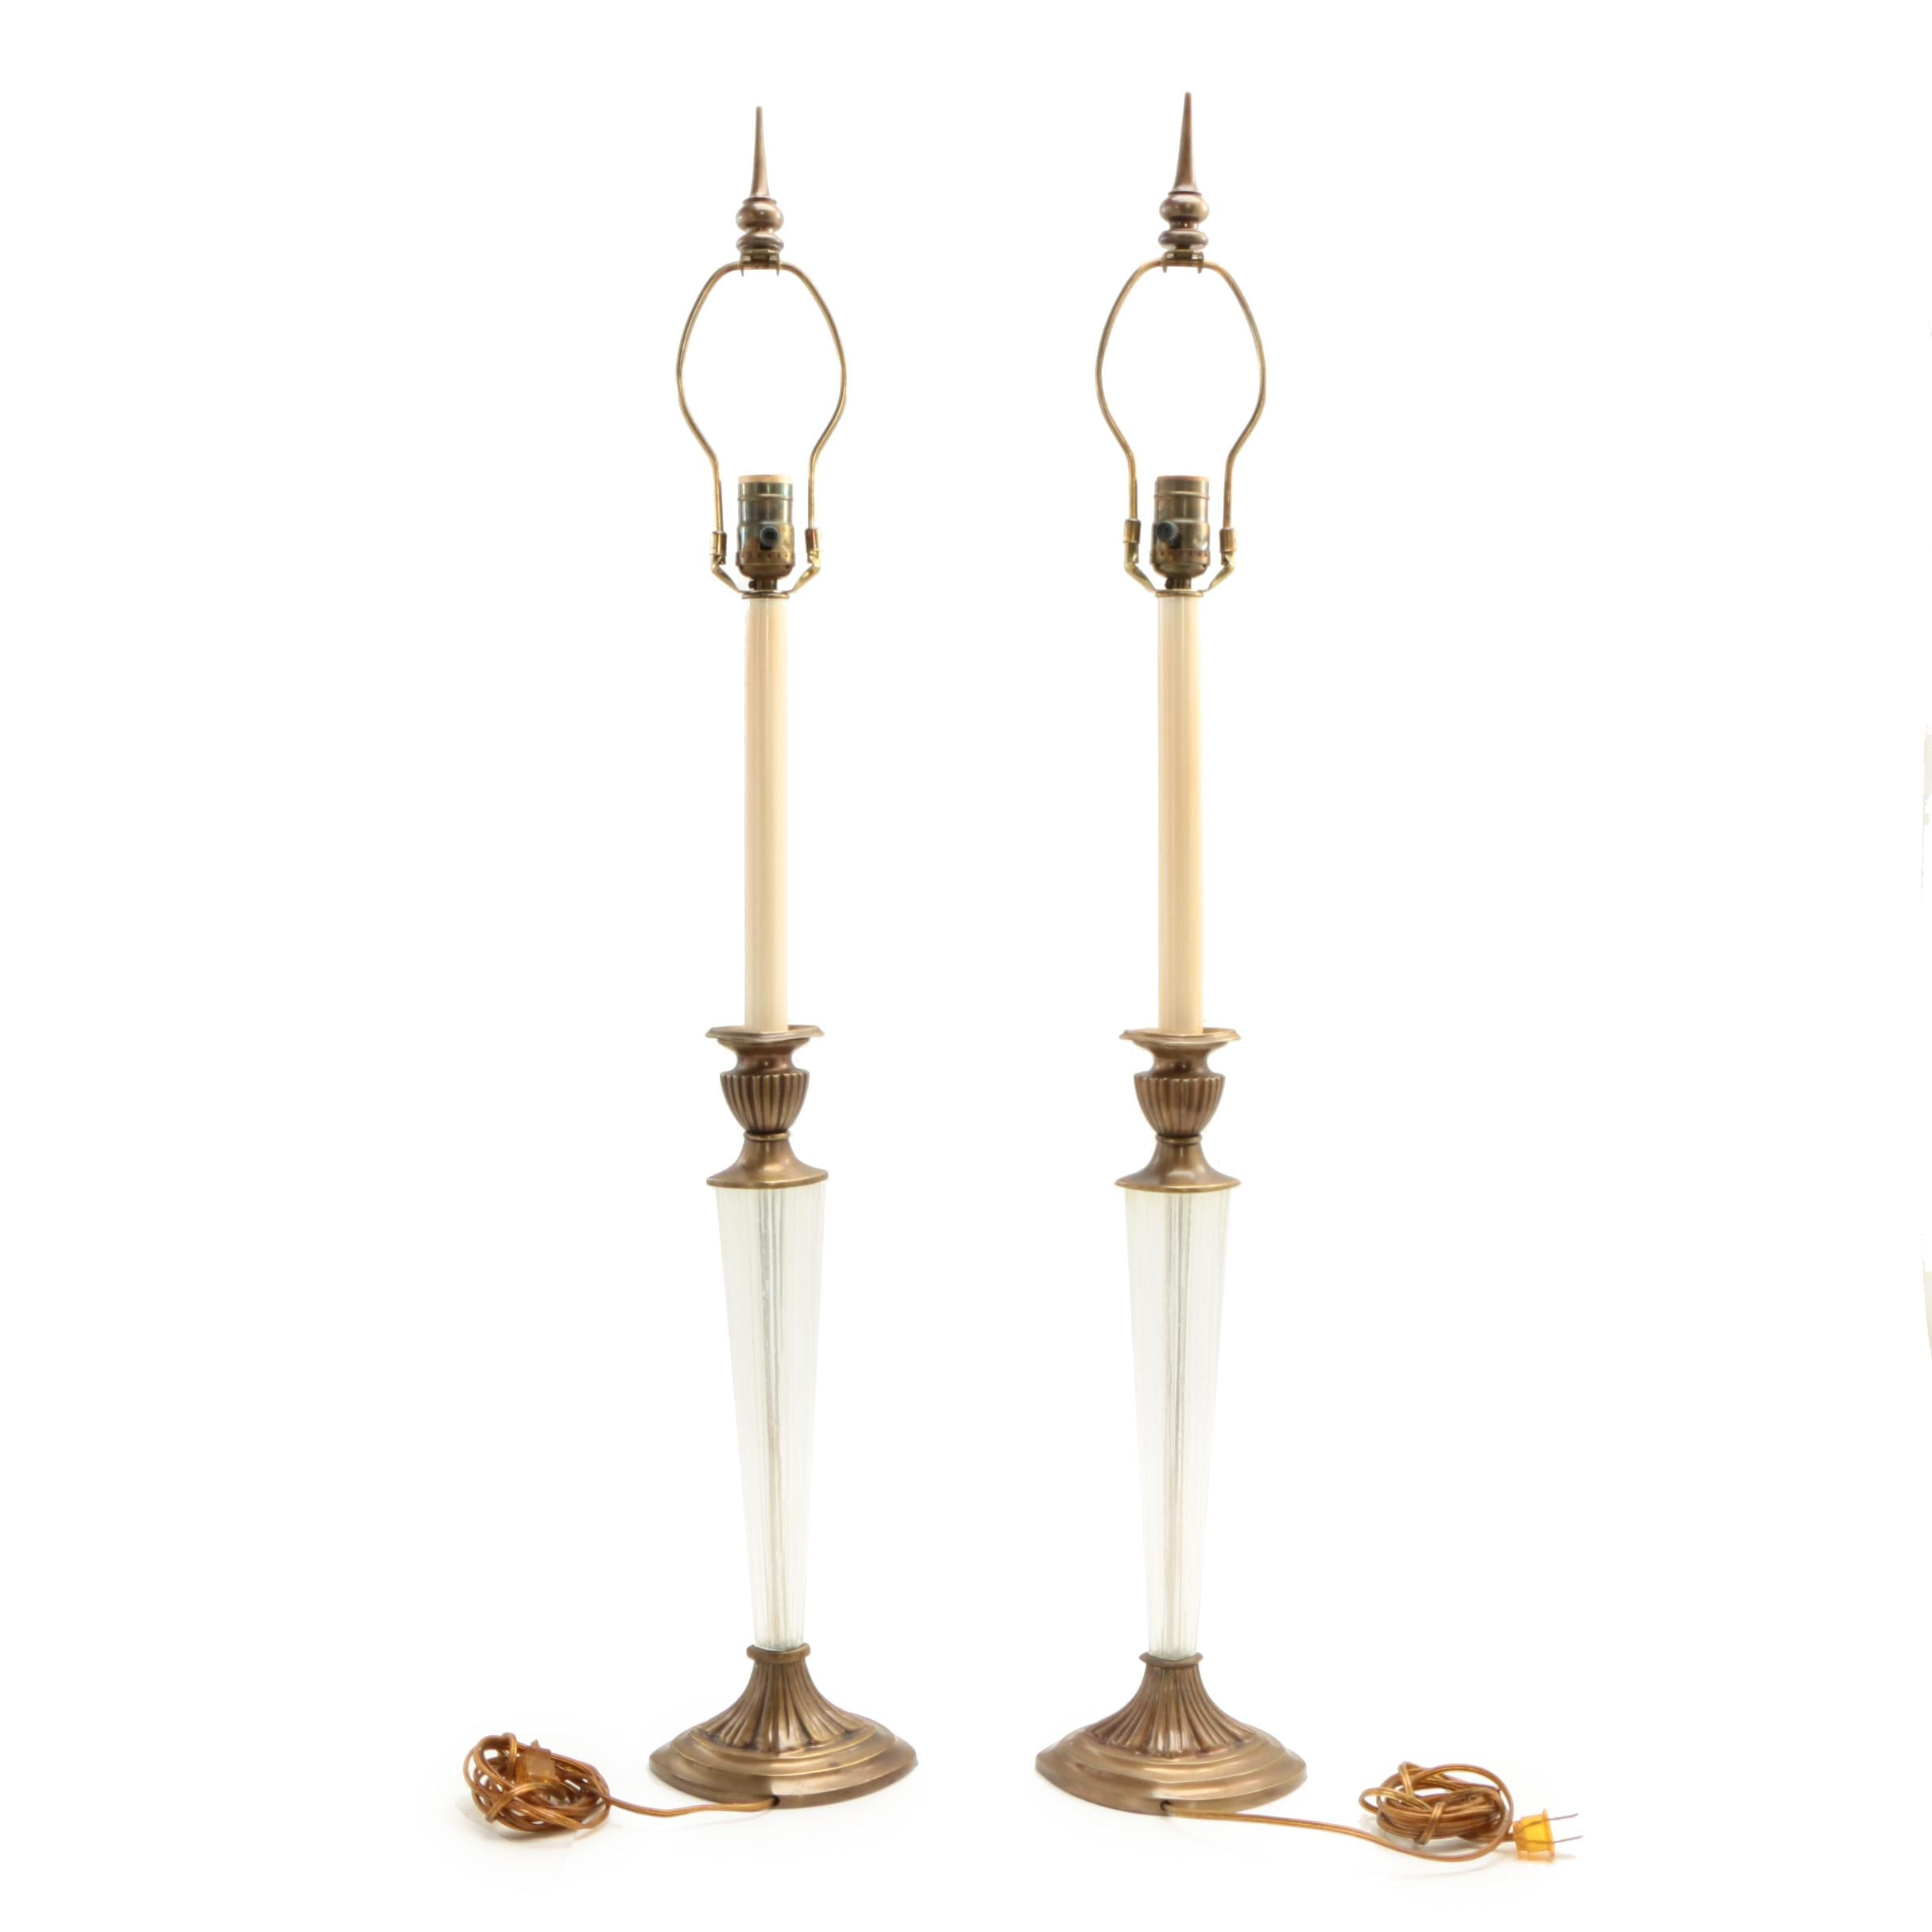 Pair of Brass-Mounted Glass Candlestick-Form Table Lamps, 20th Century